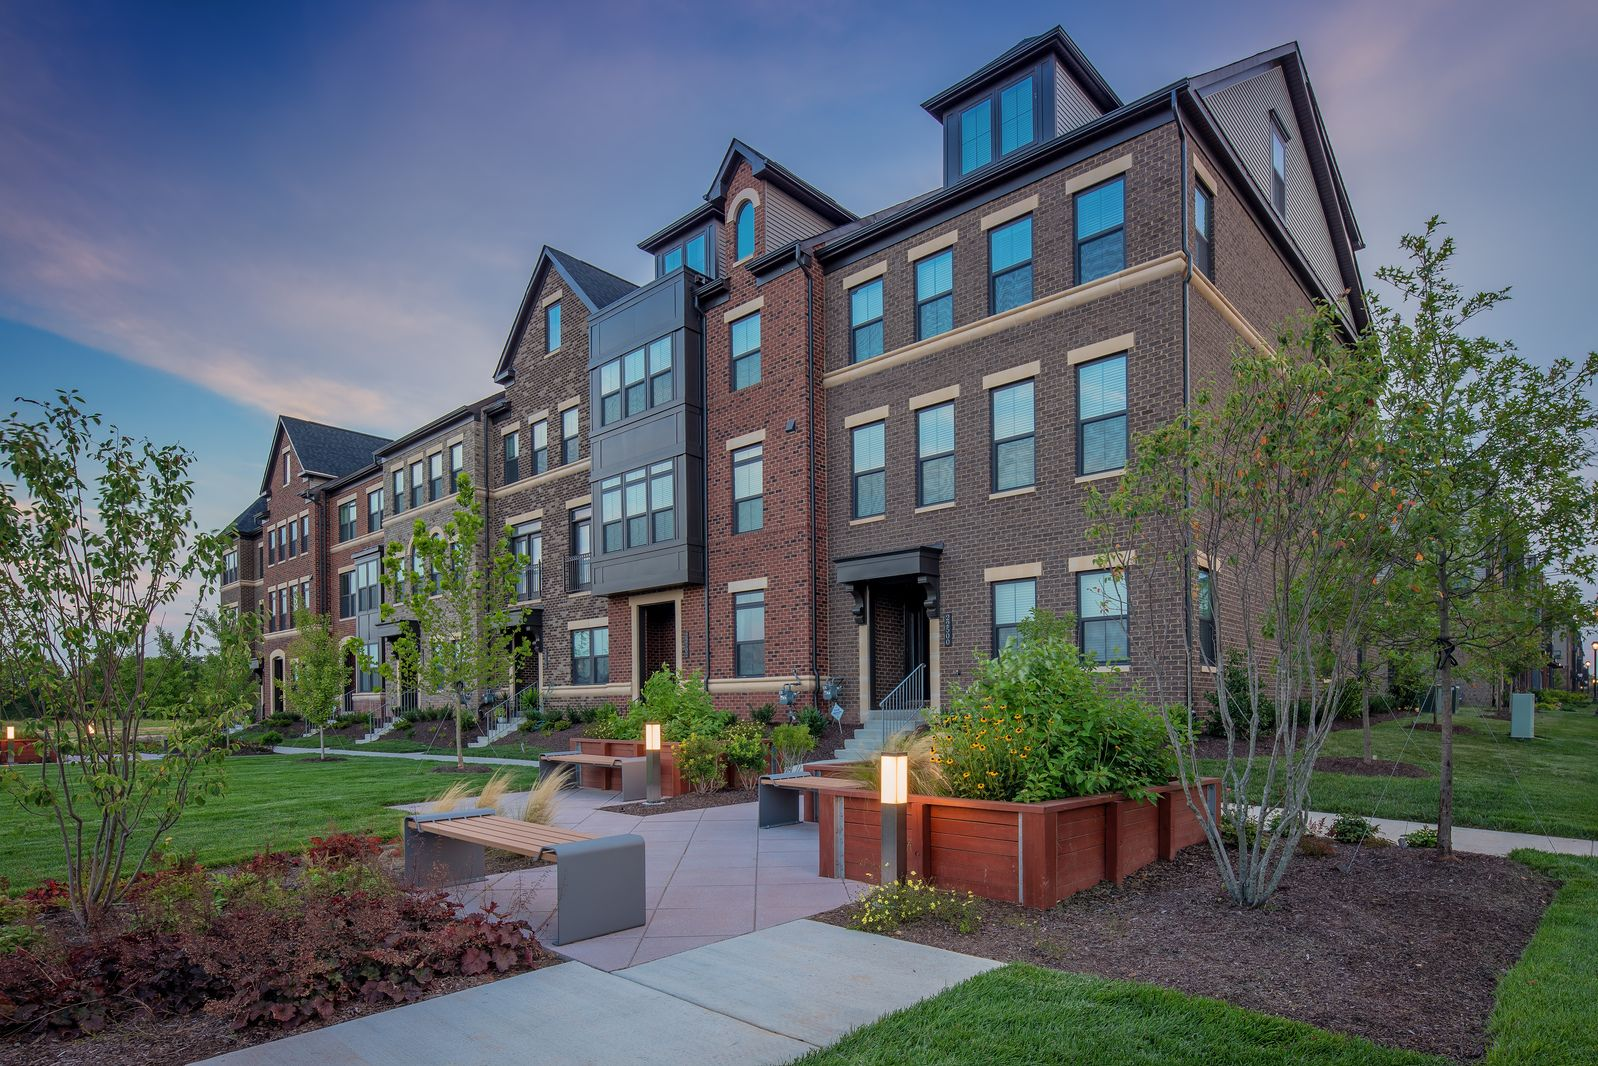 Luxury Living on Metro's Silver Line:Don't miss the final opportunity for an NV townhome in all of Loudoun County. Only 1 home remains-schedule a visit today!